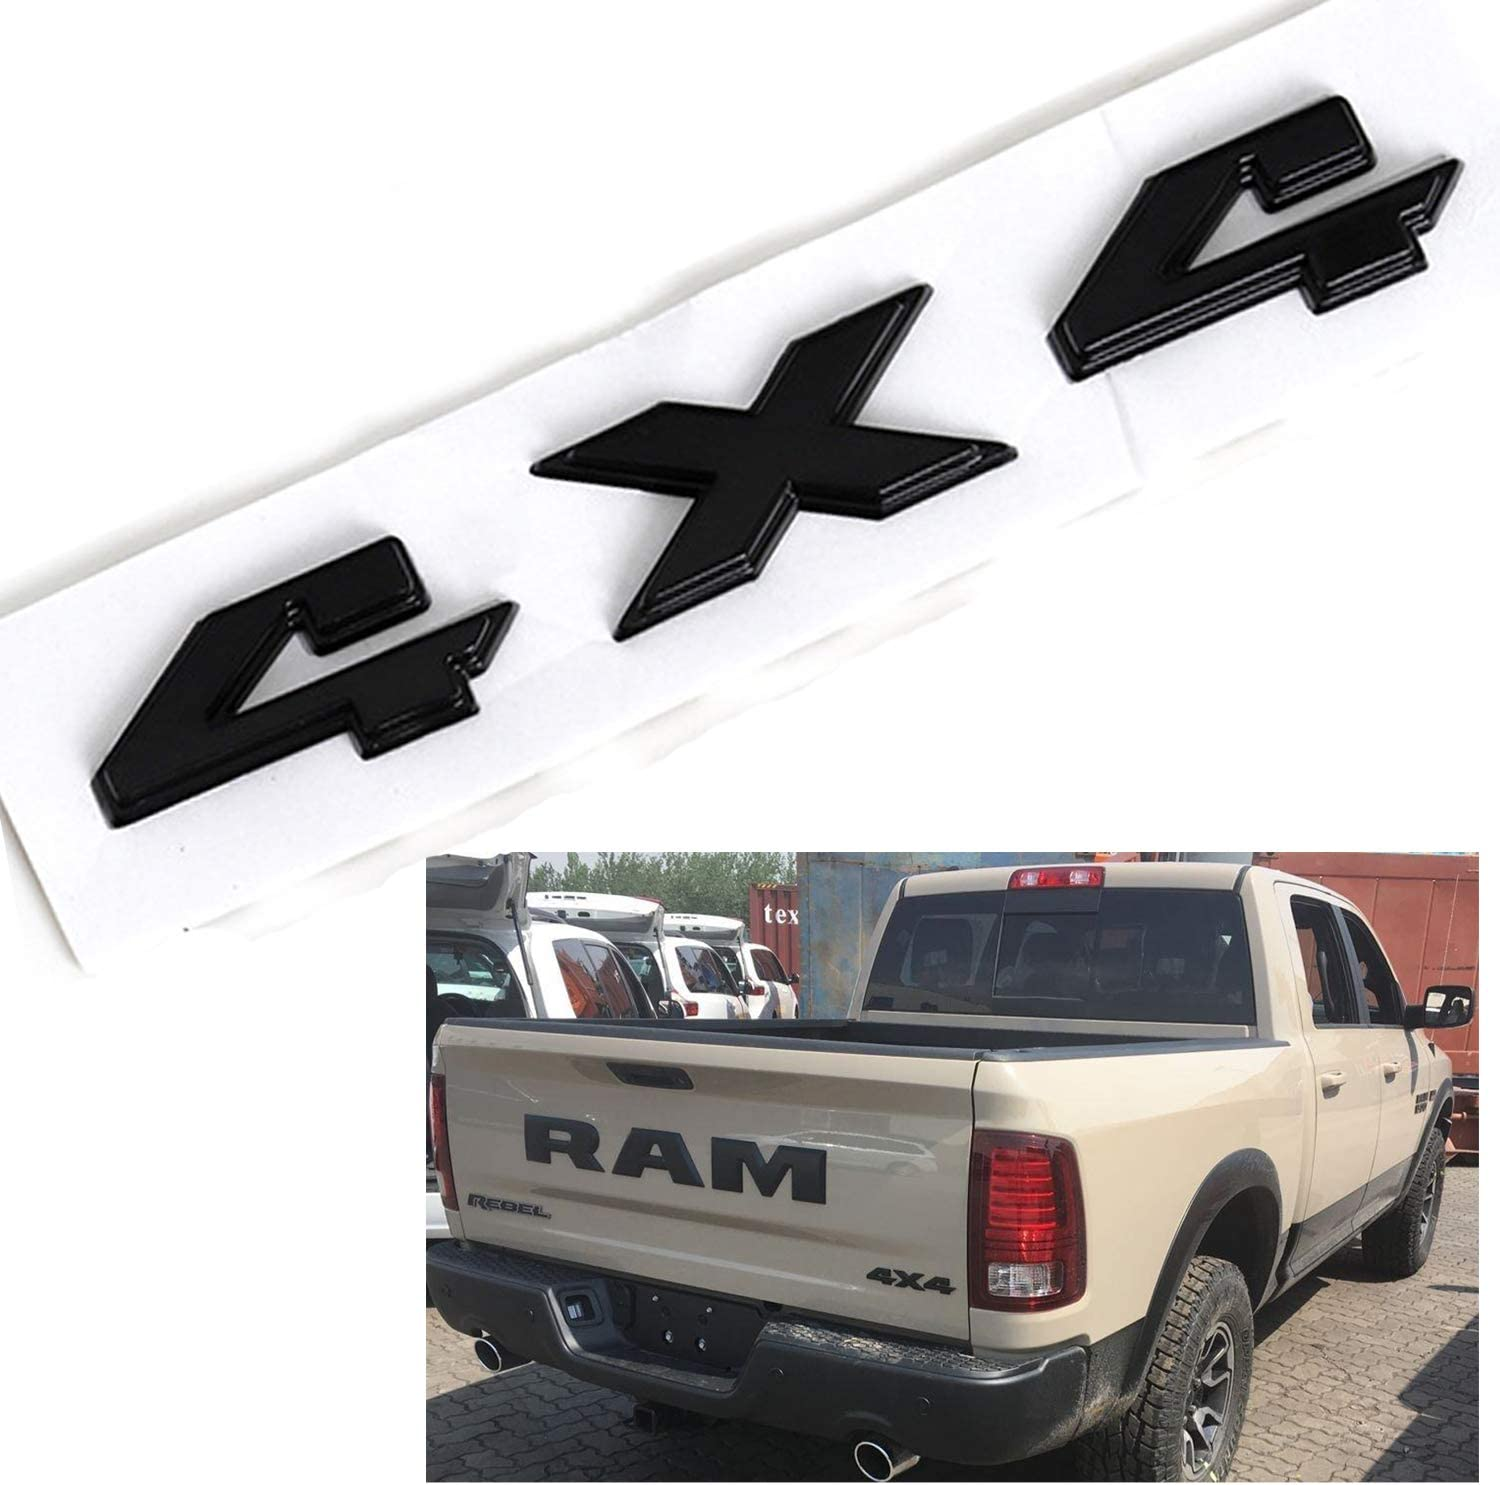 8.8 Inch 4x4 Emblem,1Pack Black Badge Chrome Decal Sticker Replacement for Dodge Ram 1500 2500 3500,Jeep Grand Cherokee Compass Wrangler Black